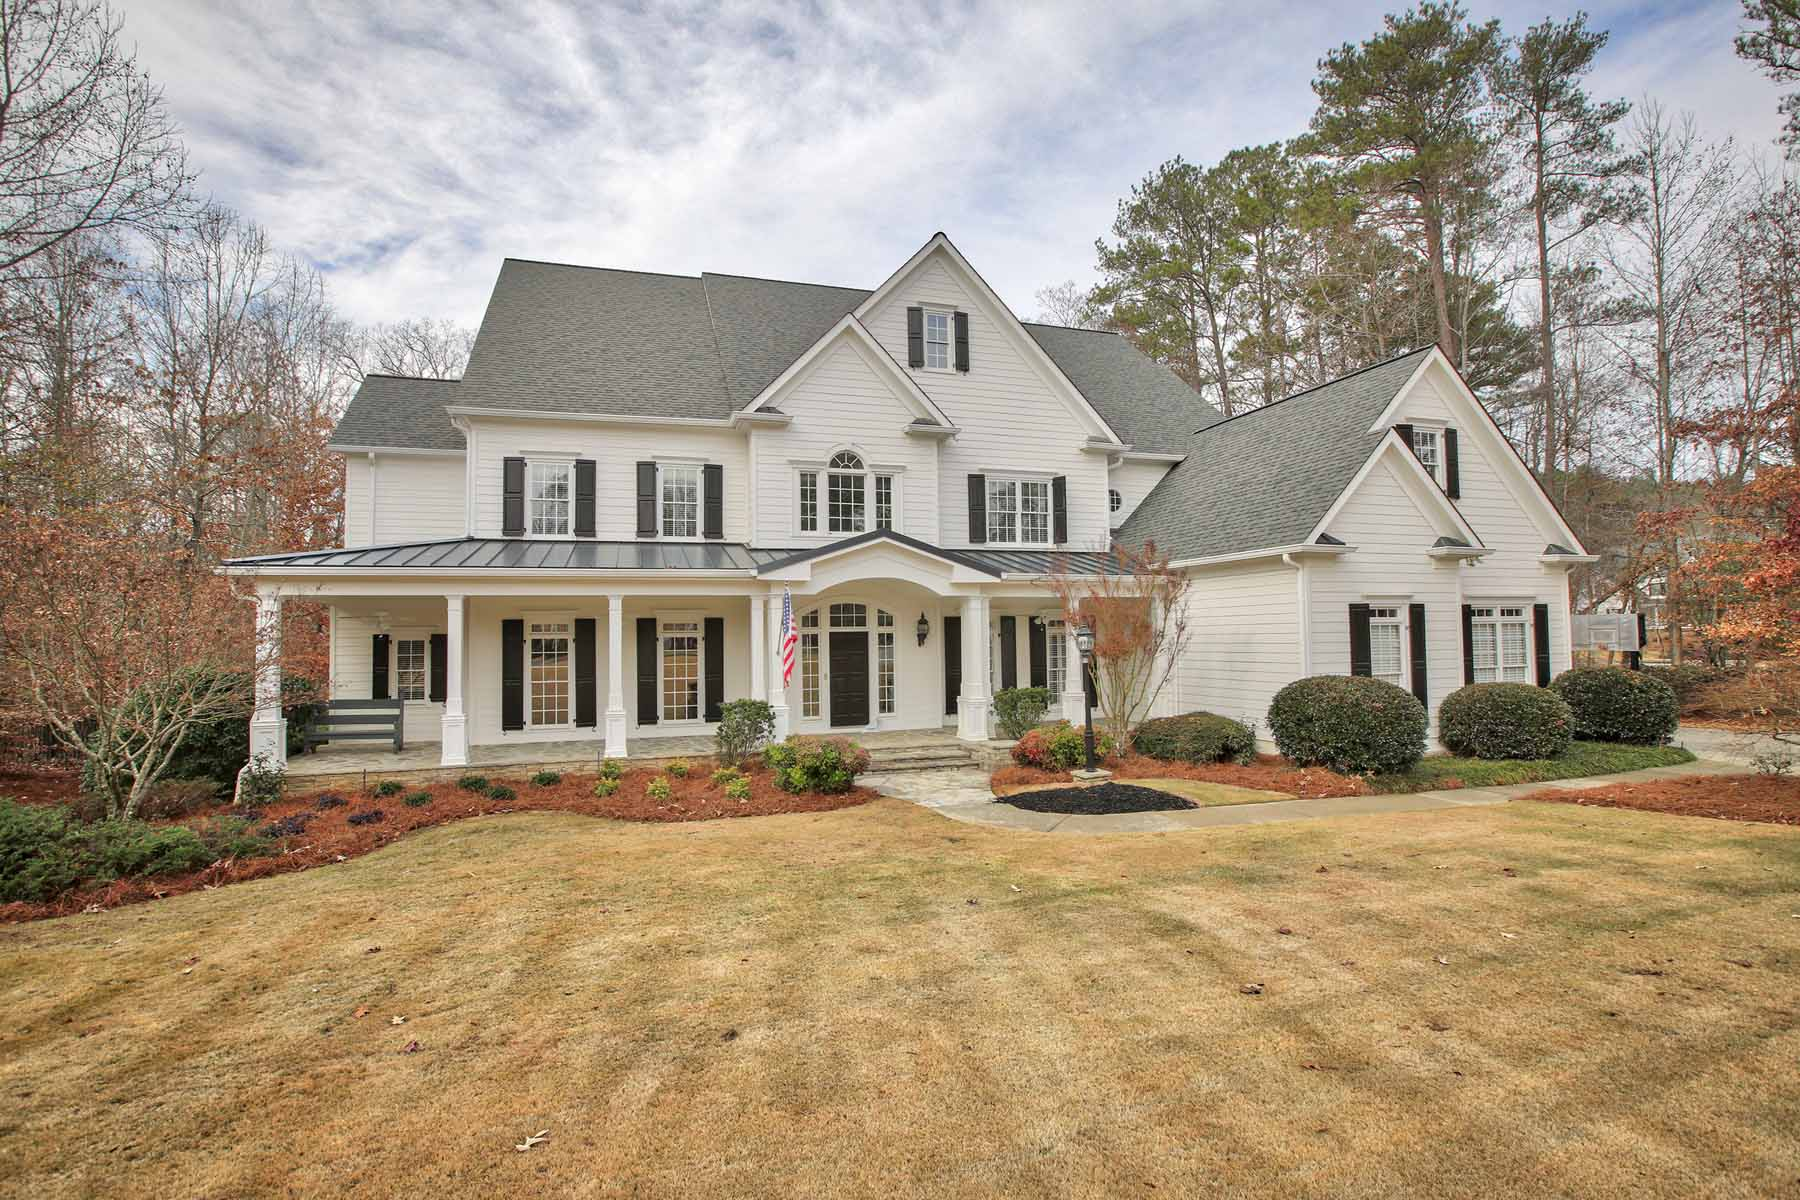 단독 가정 주택 용 매매 에 Custom Built Estate Farmhouse in Gated Community 310 Lake Bend Court Alpharetta, 조지아, 30004 미국